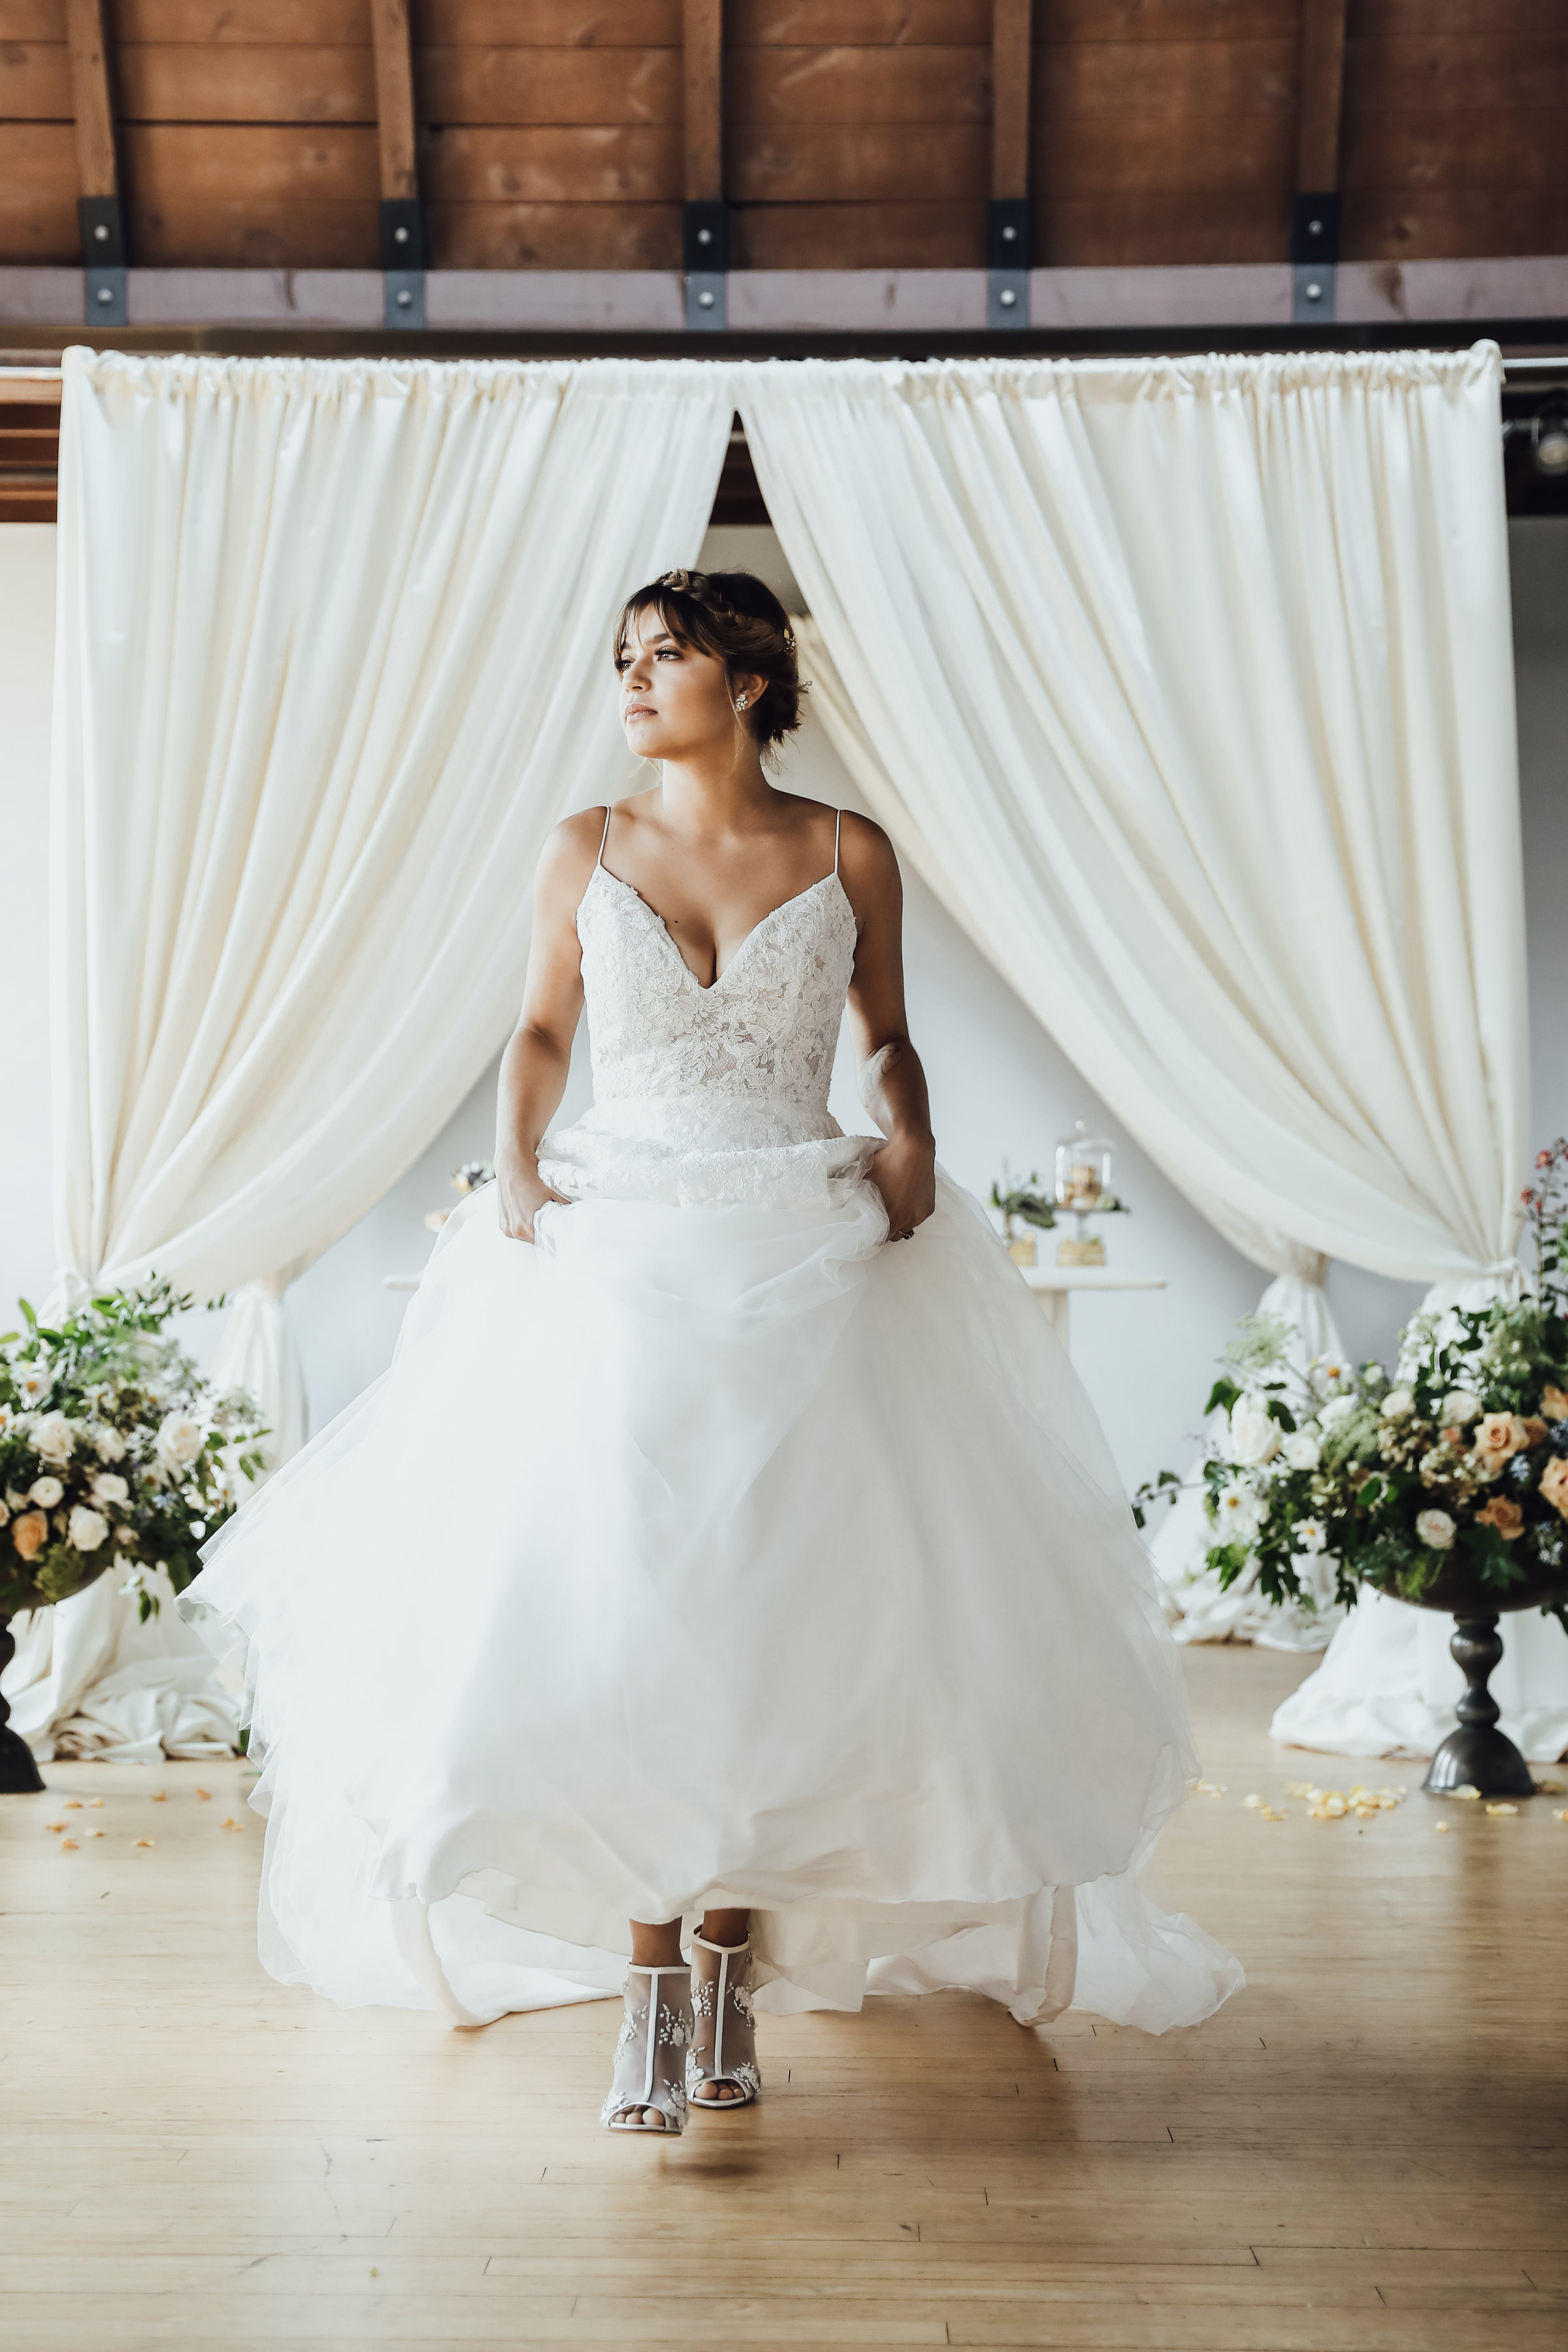 Photo by Rachel Photographs | Dress + Shoes by Chantilly Couture Bridal | Flowers by The Wild Mother | Venue: Holloway House